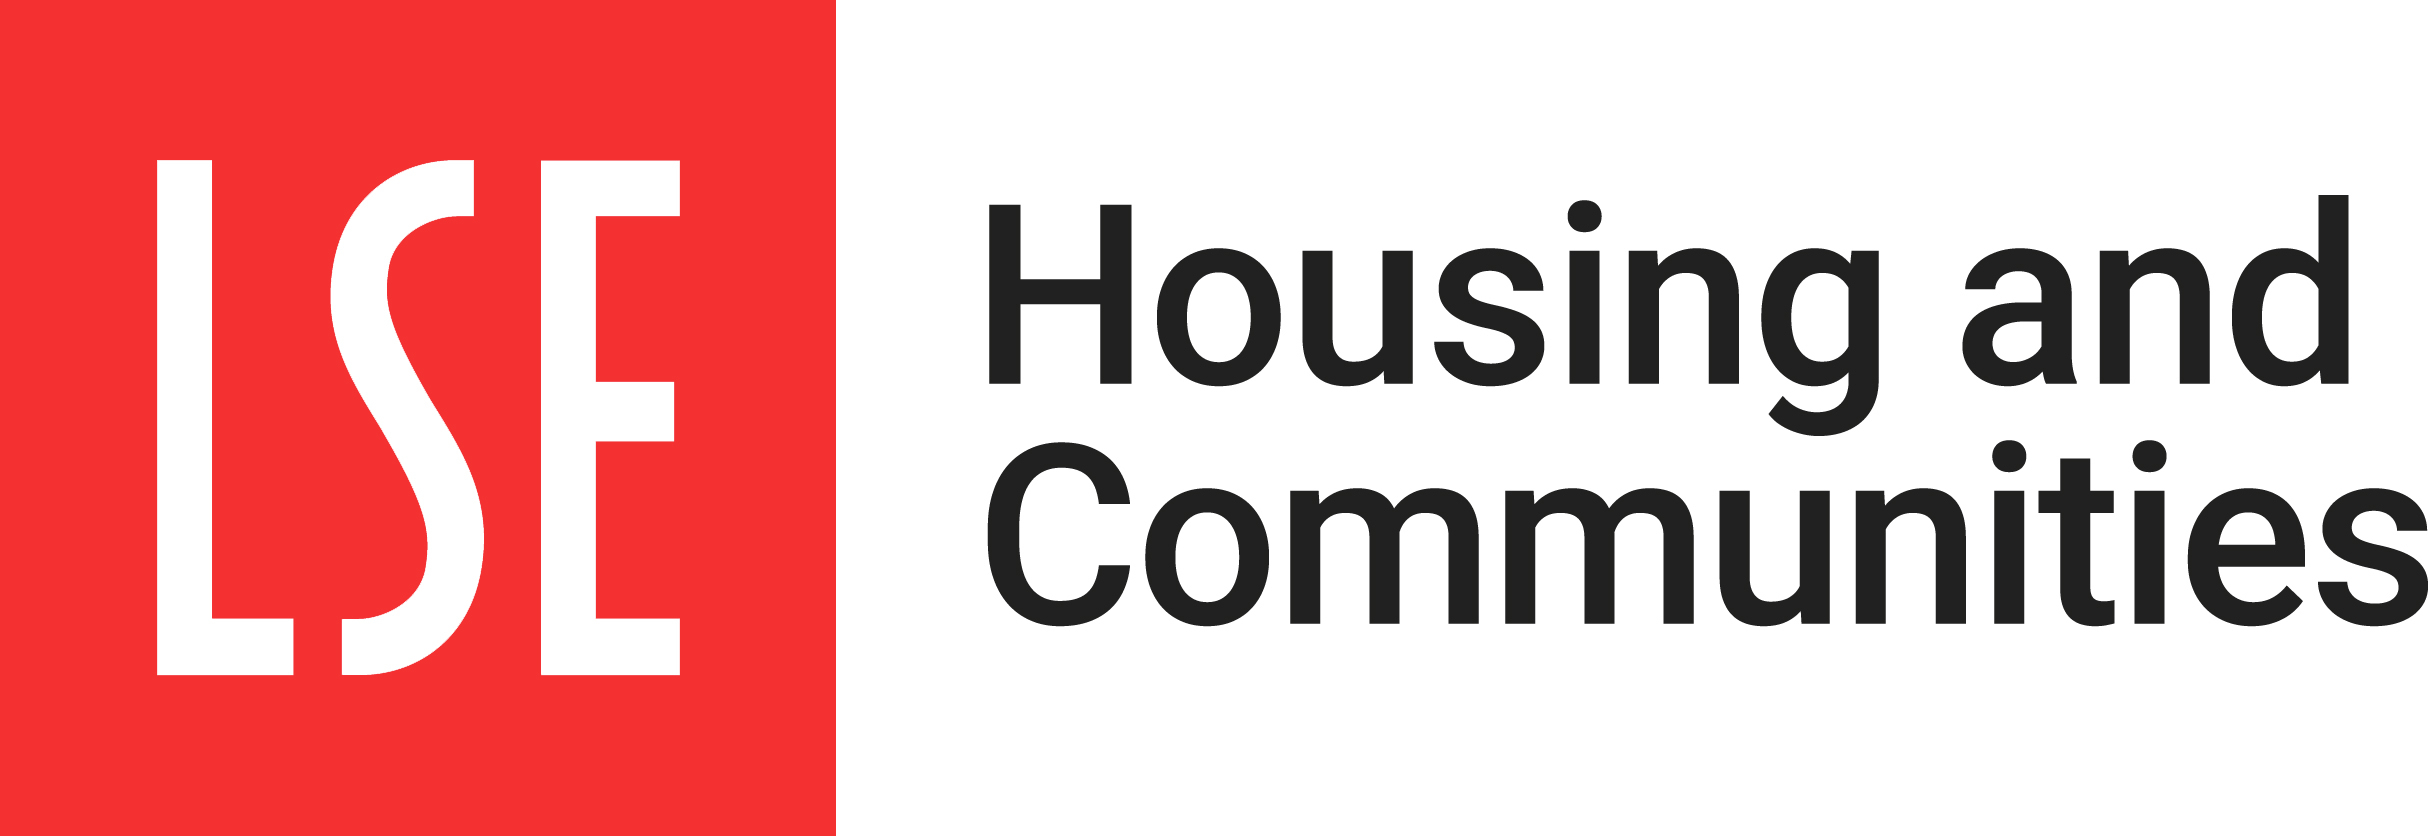 LSE Housing and Communities Logo